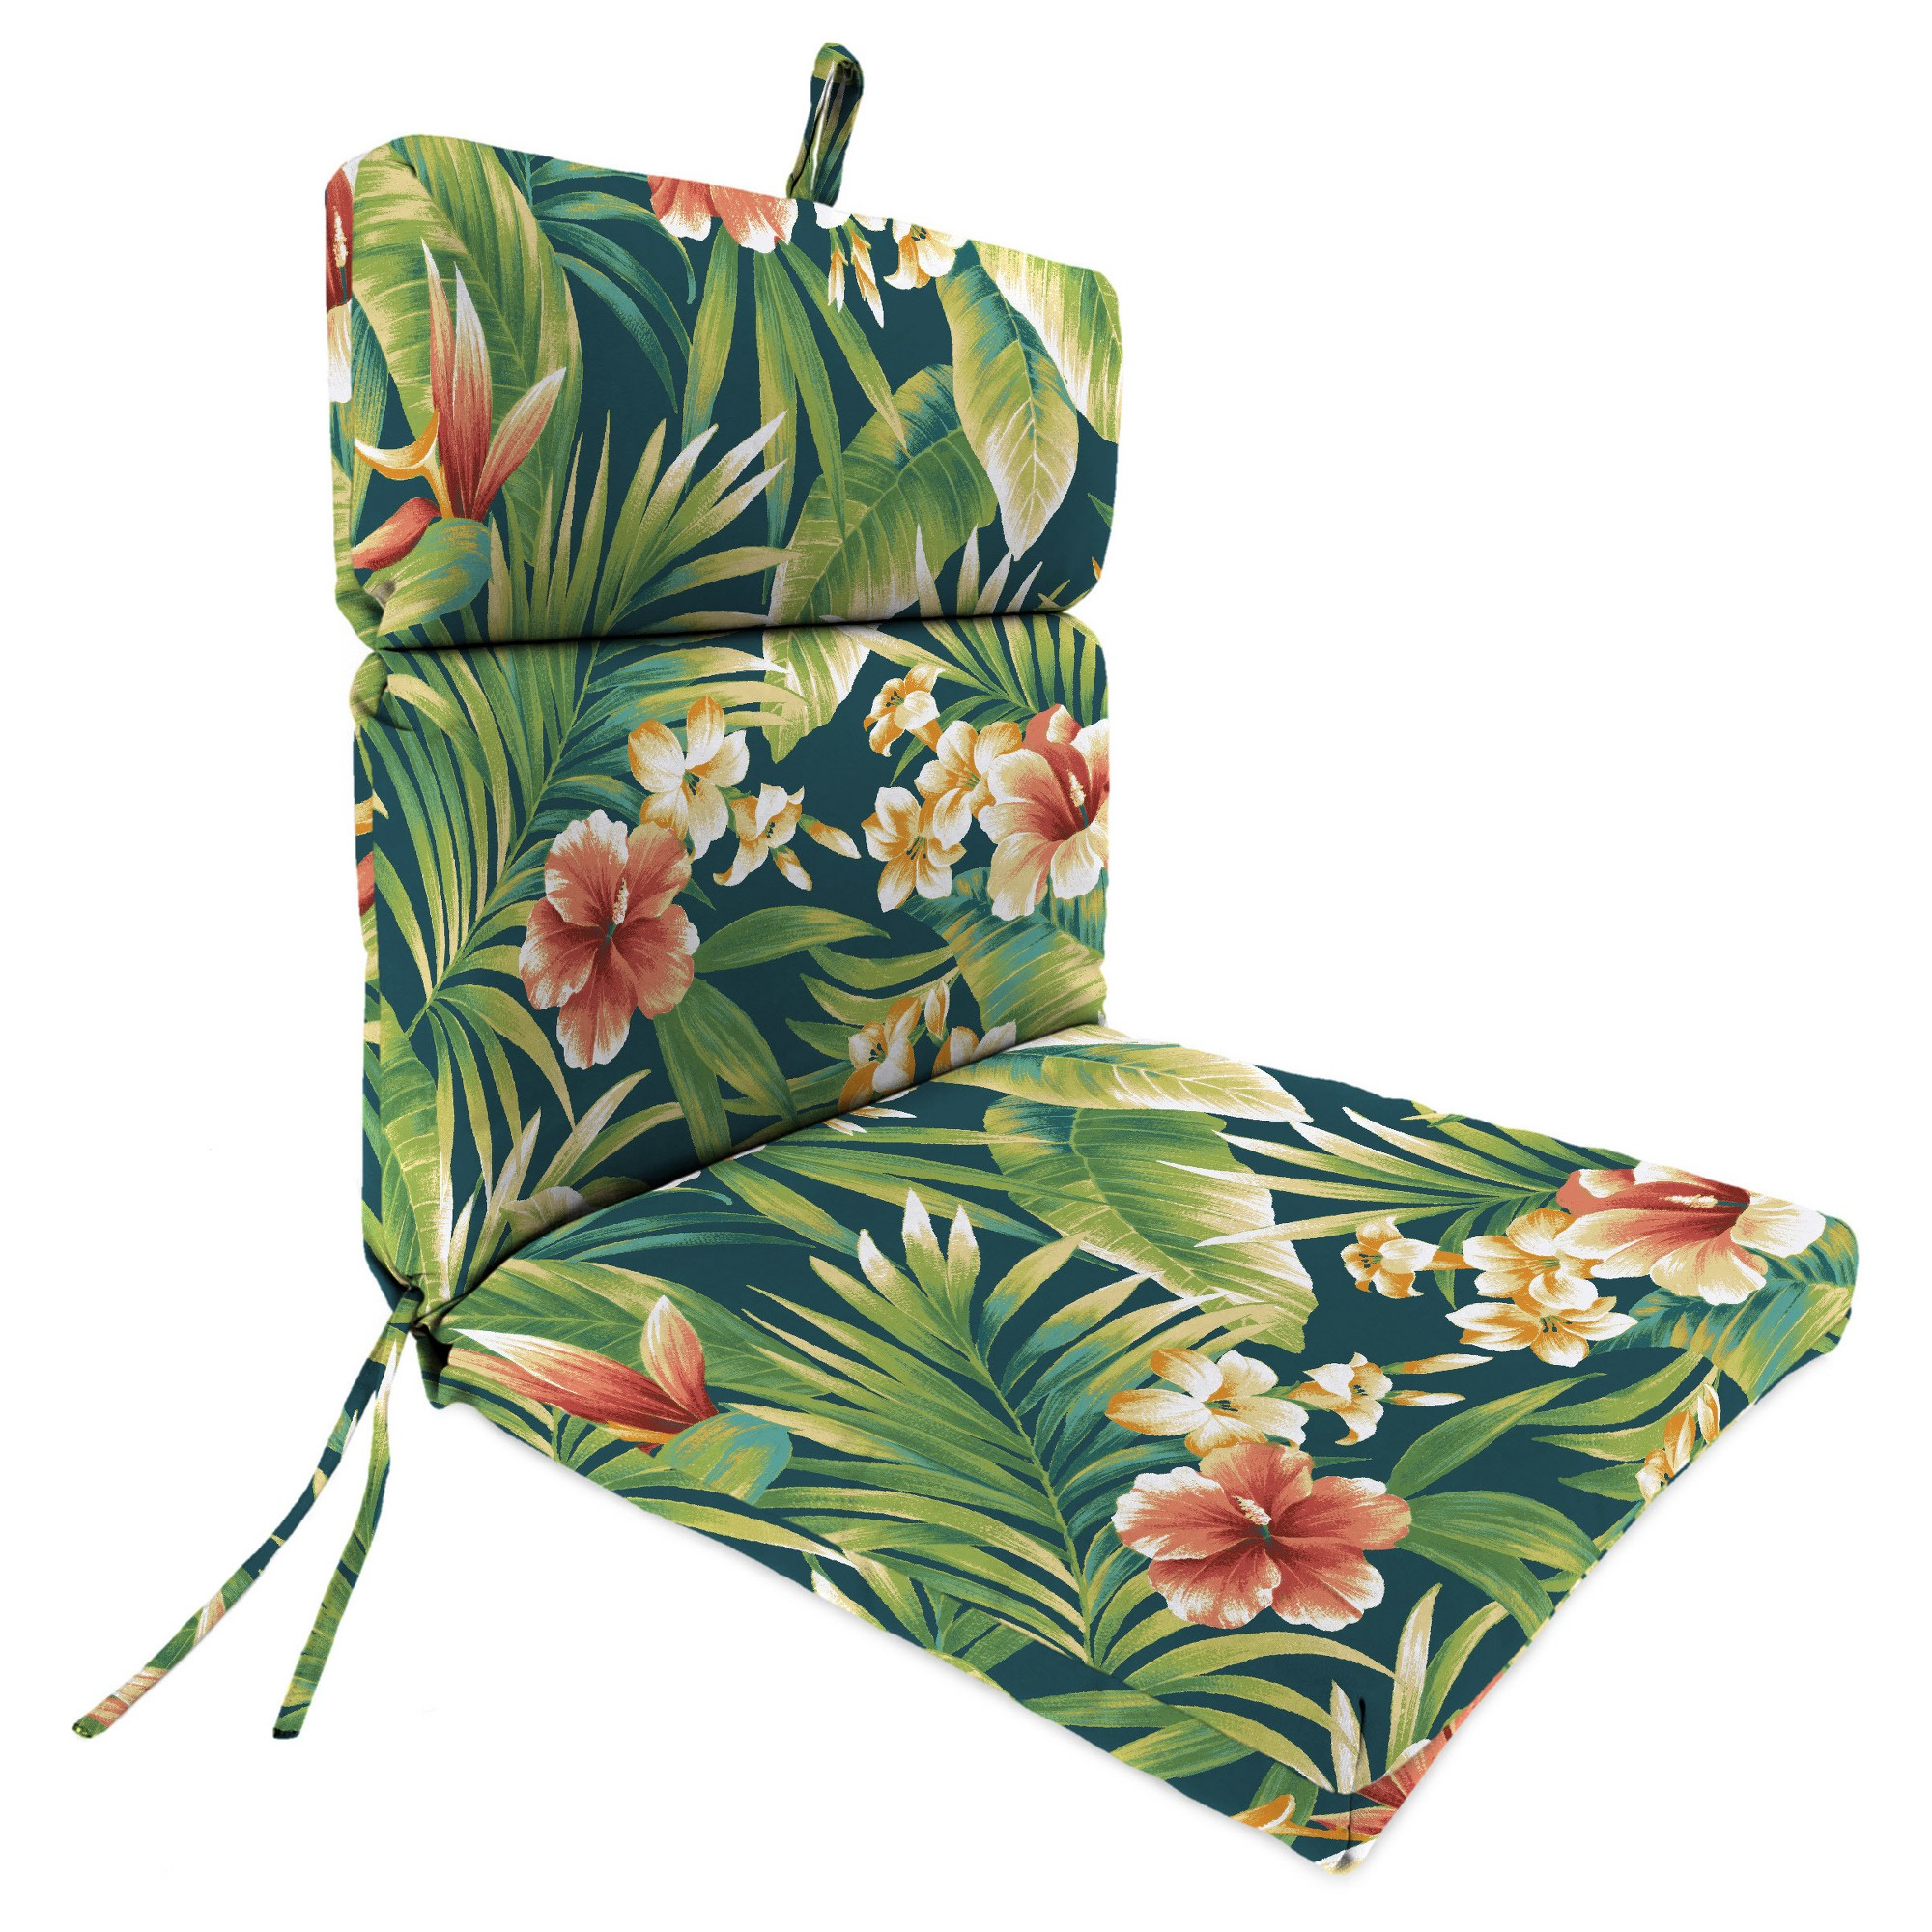 Outdoor French Edge Dining Chair Green Floral Jordan